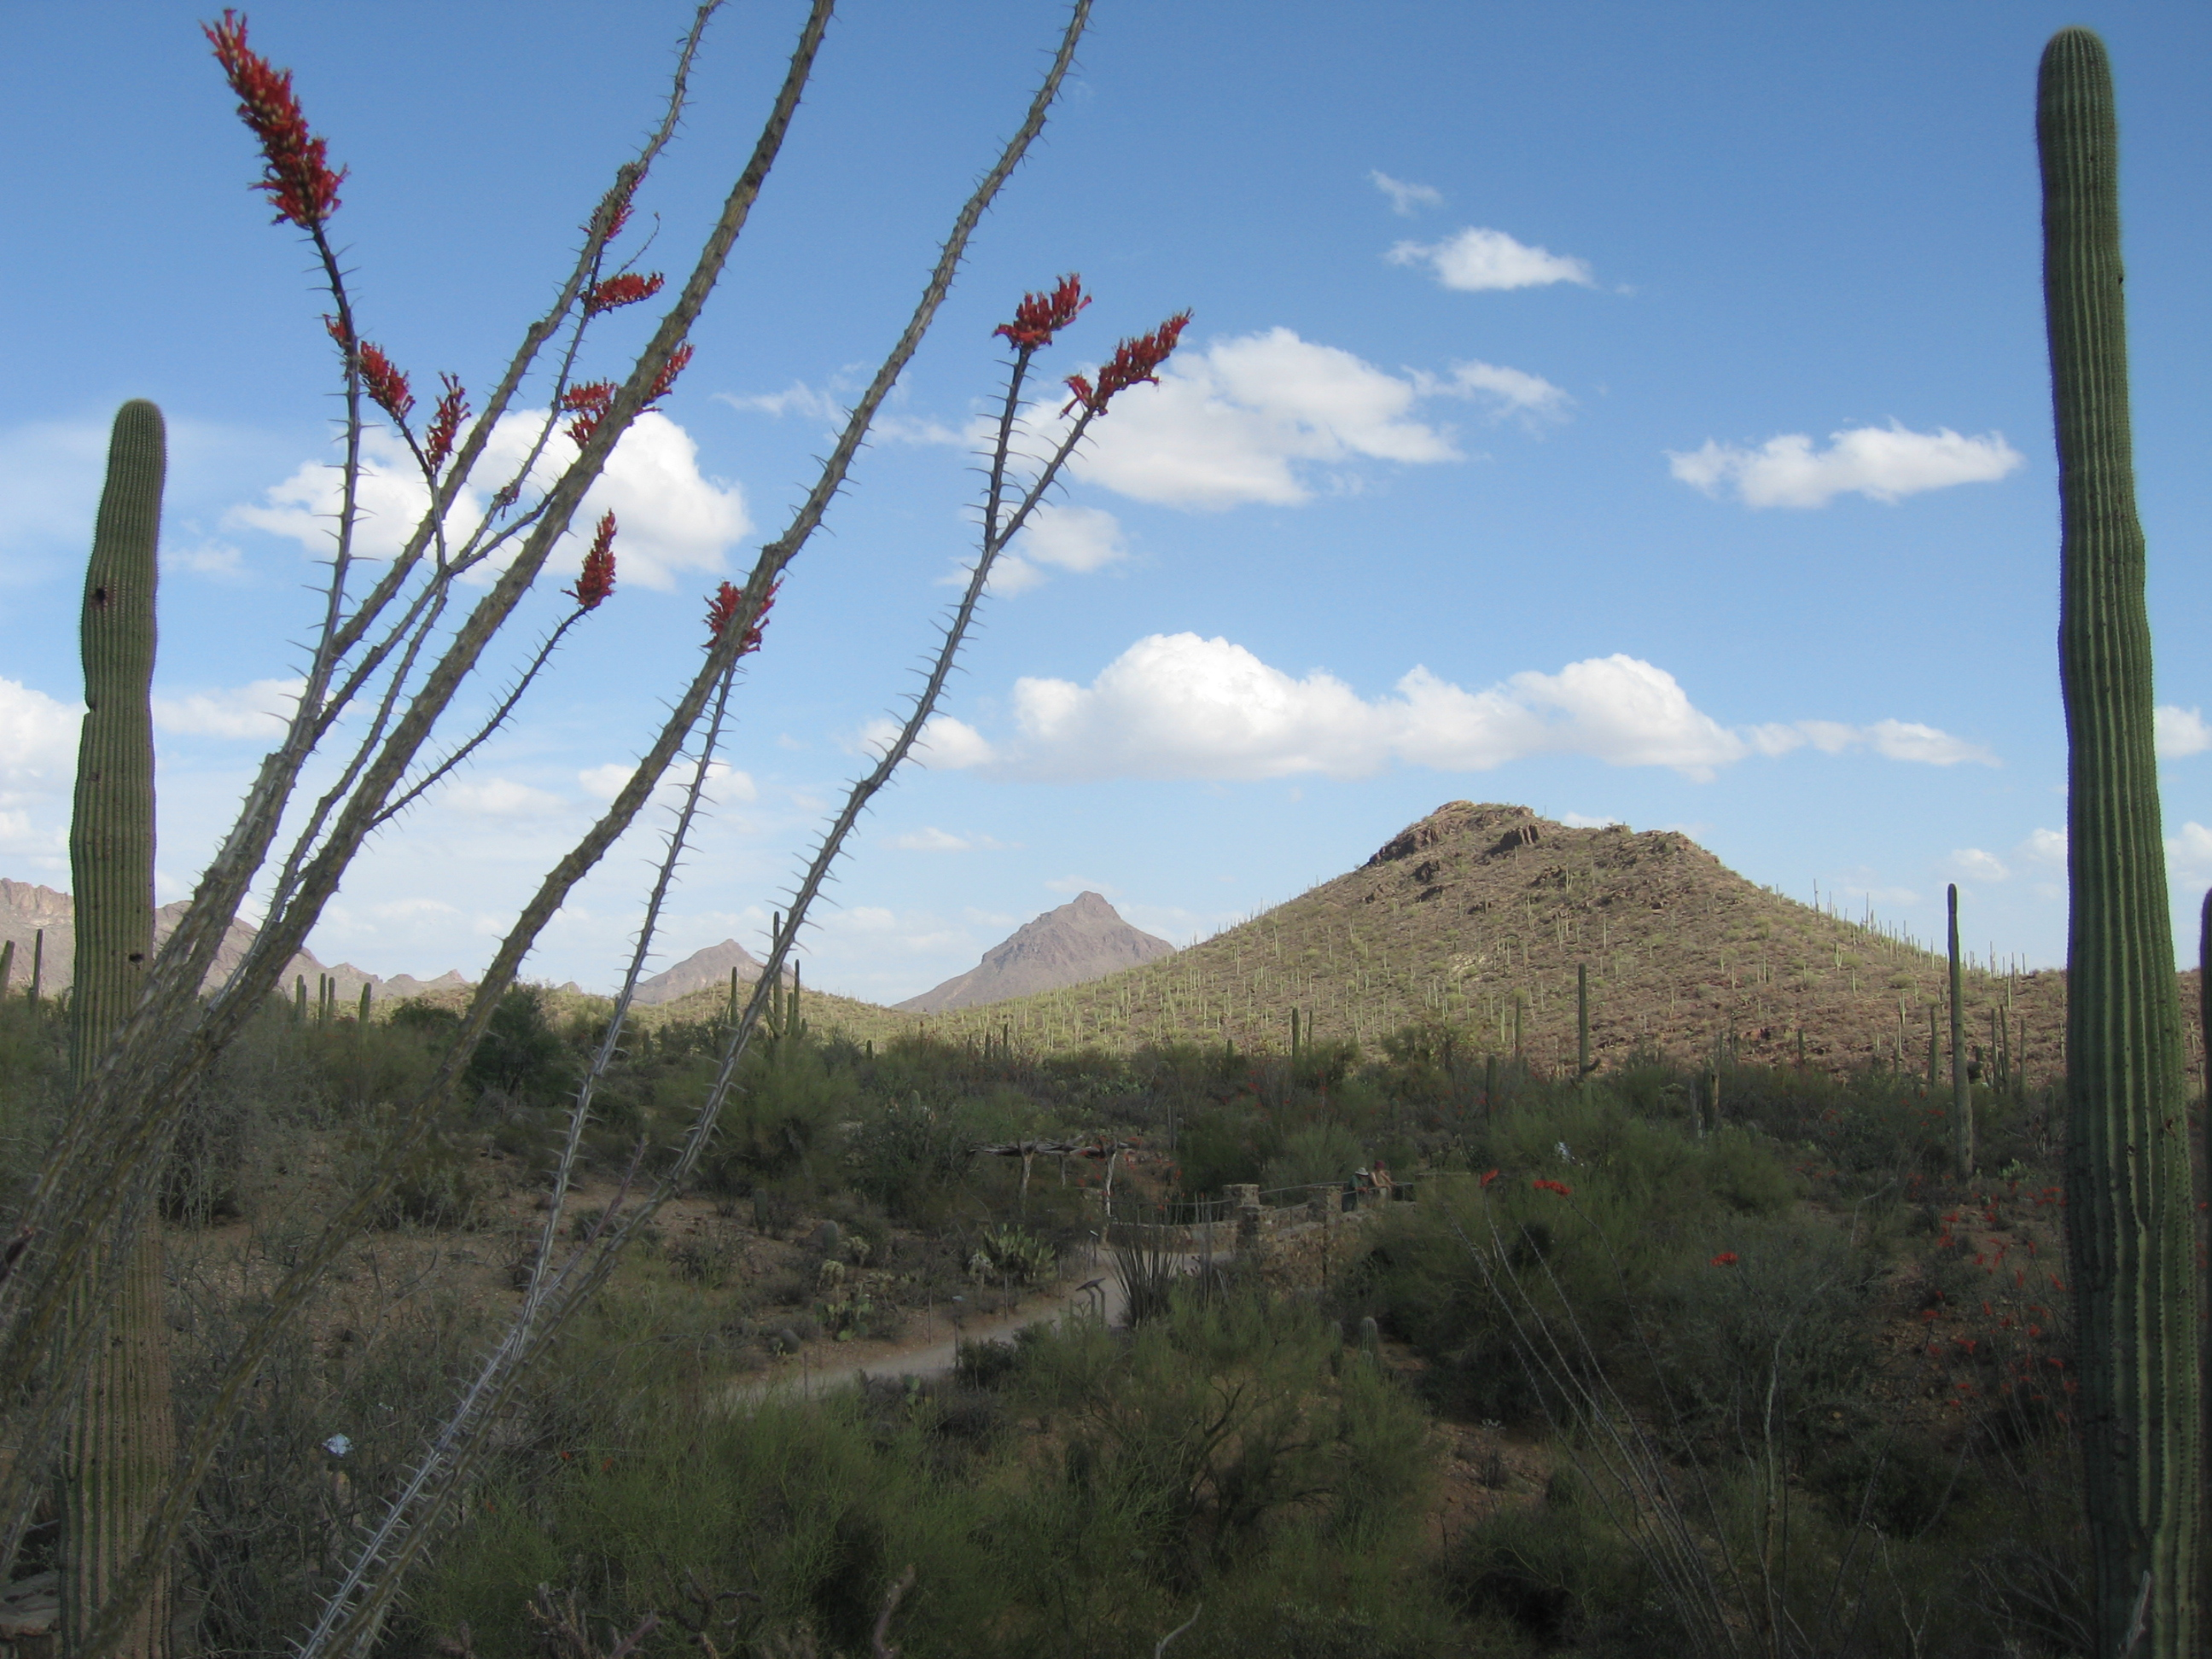 Tucson is home to the ambitious Arizona Plan, to bring the great art of the East to the West.